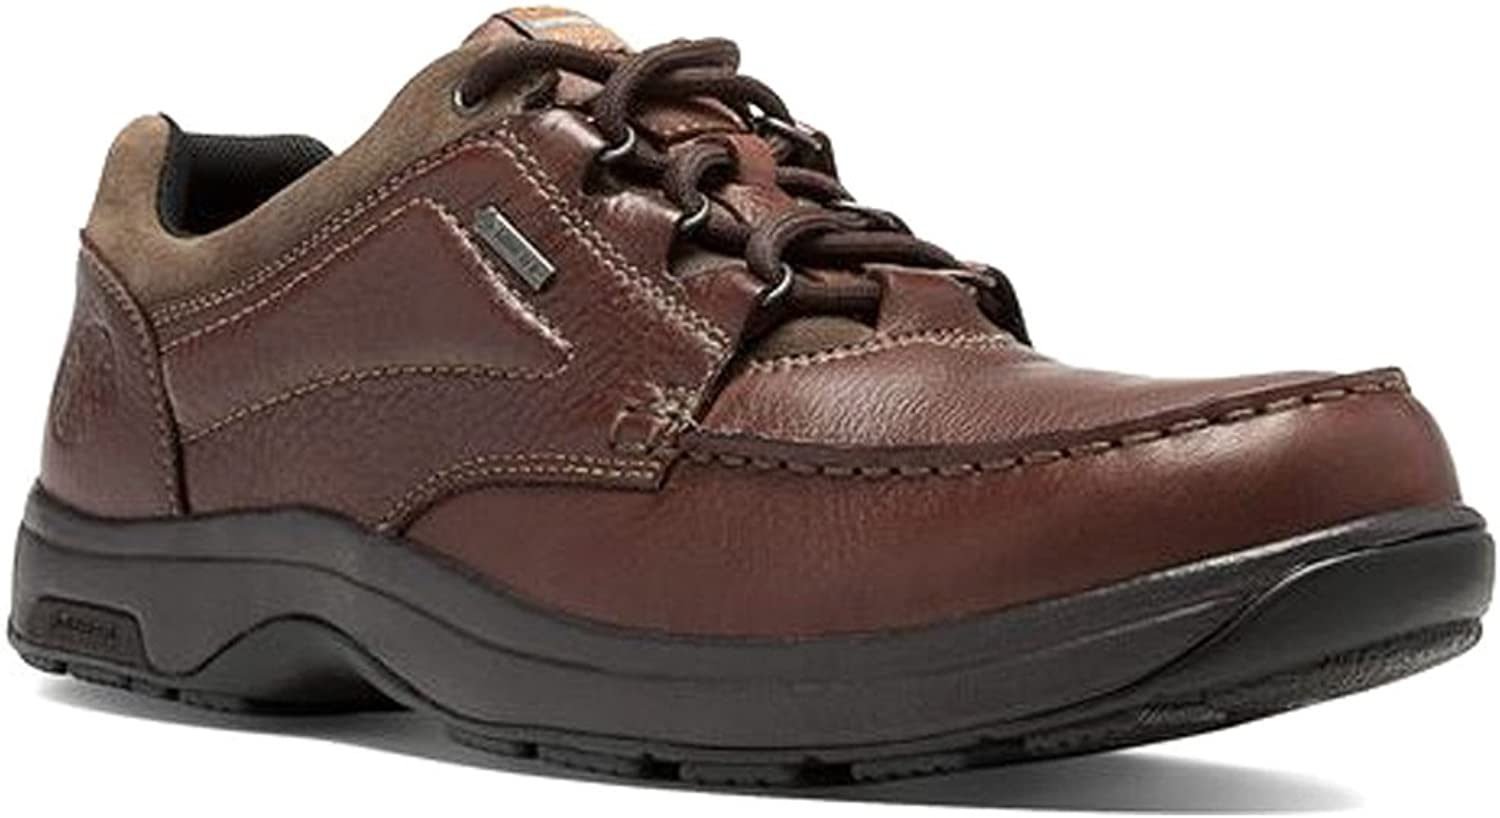 Dunham Herren Exeter Low Casual Oxford, Oxford, Oxford, Brown, 53 EU B00I2ZFD2A  98d067